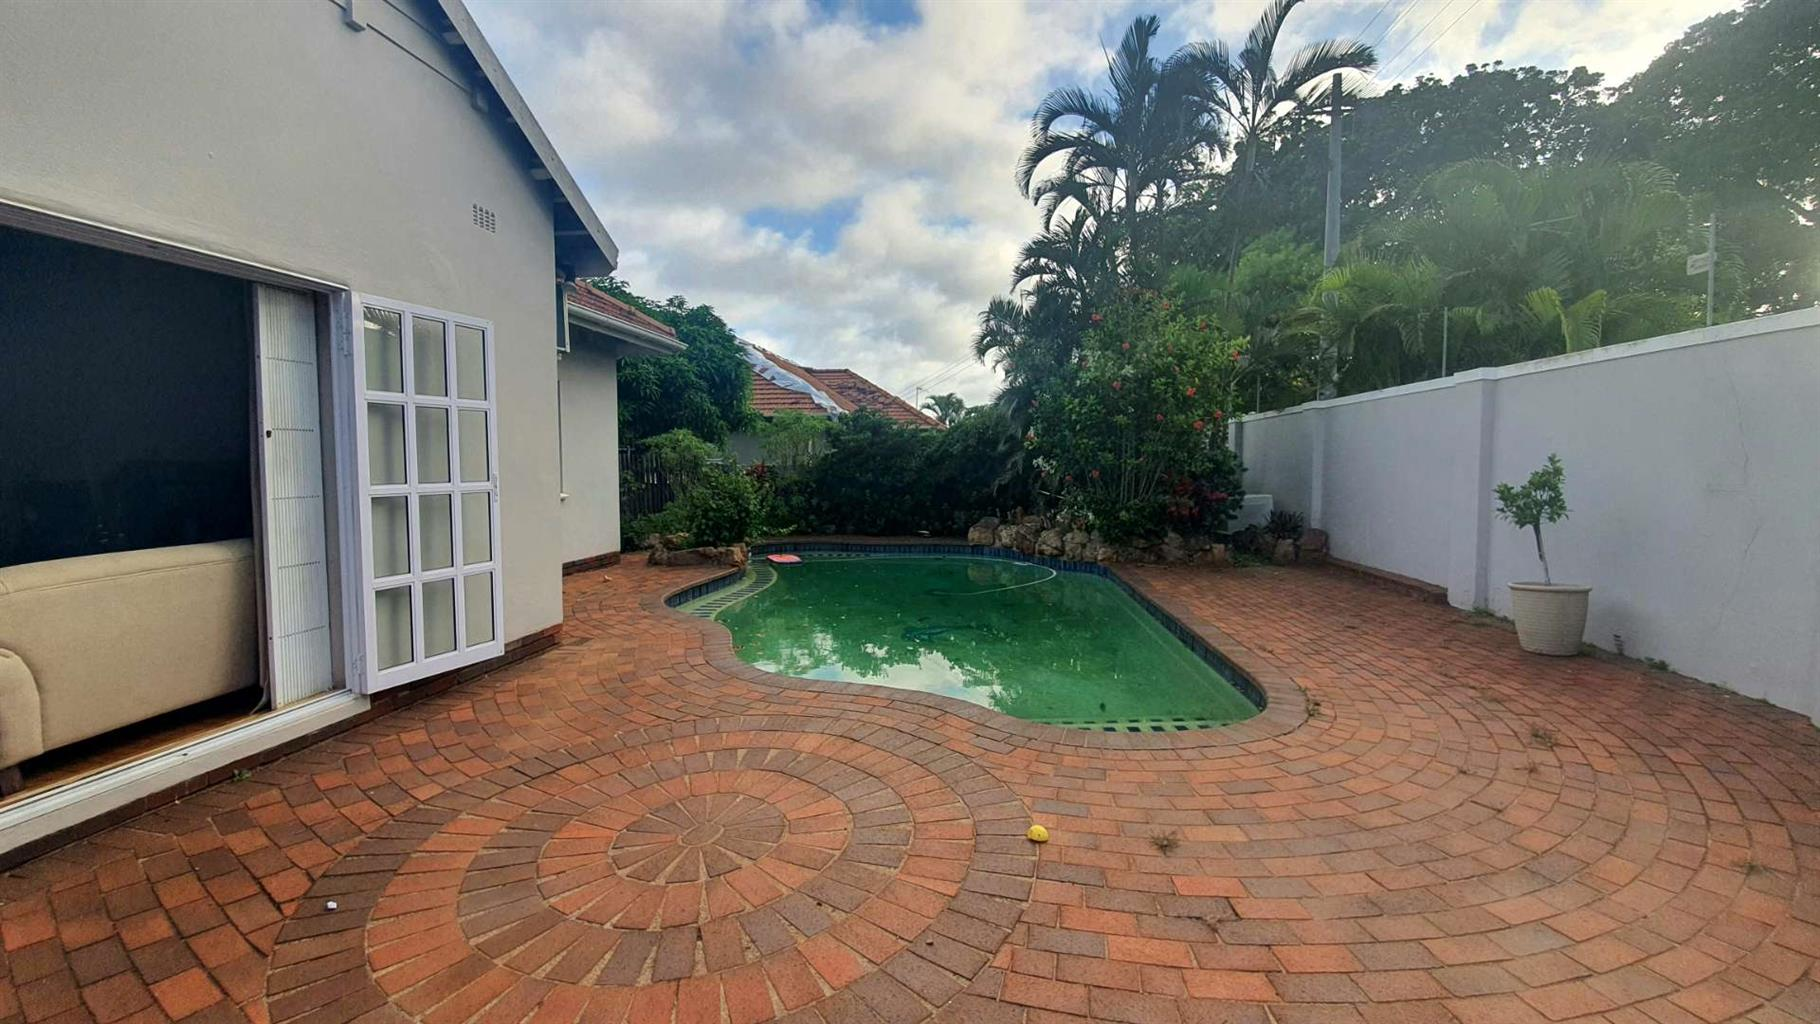 House Rental Monthly in Durban North